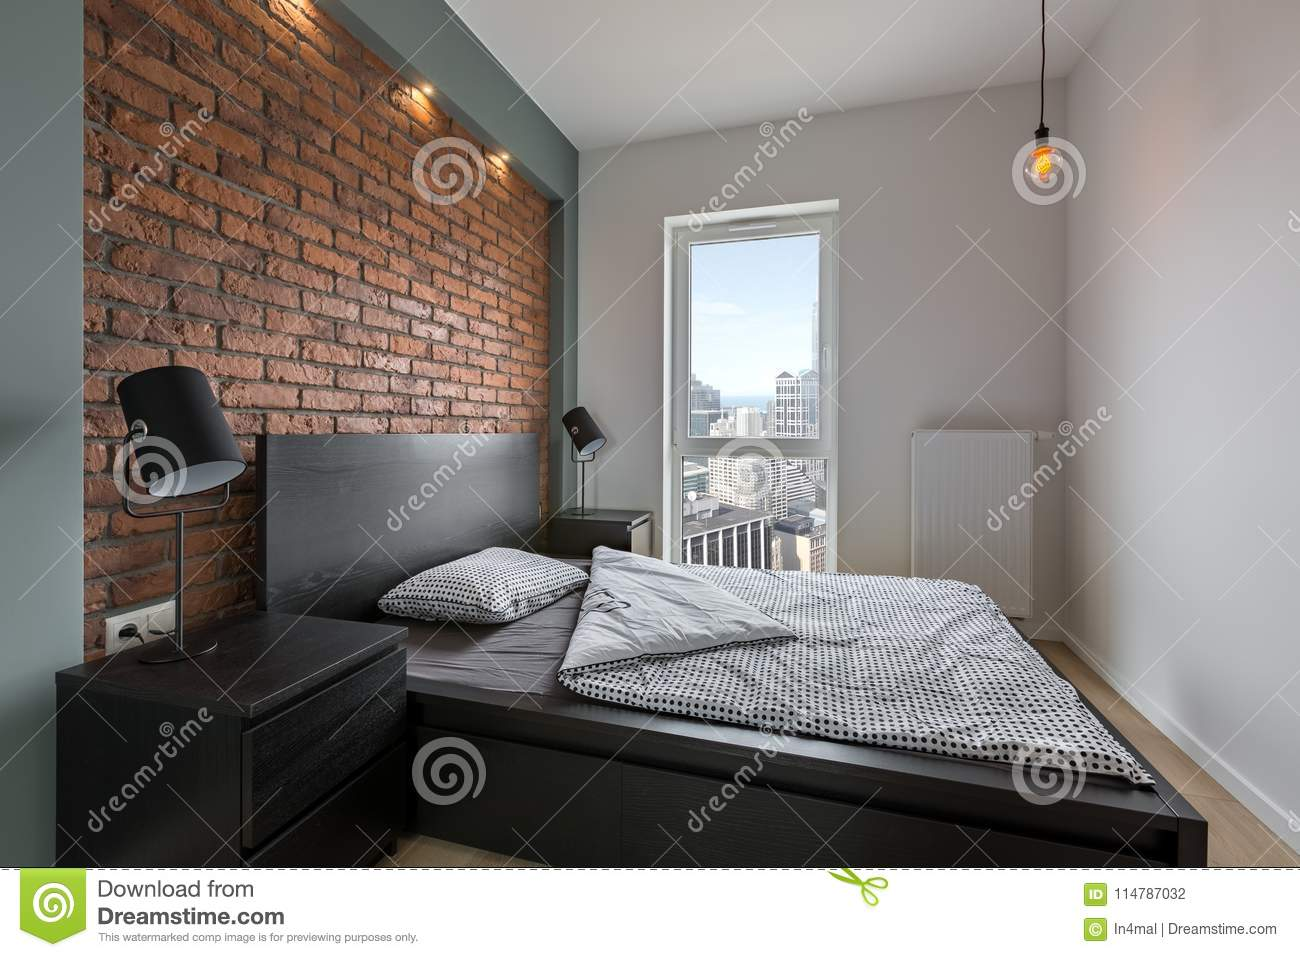 Download Industrial Style Bedroom With Bed Stock Photo   Image Of  Contemporary, Indoor: 114787032